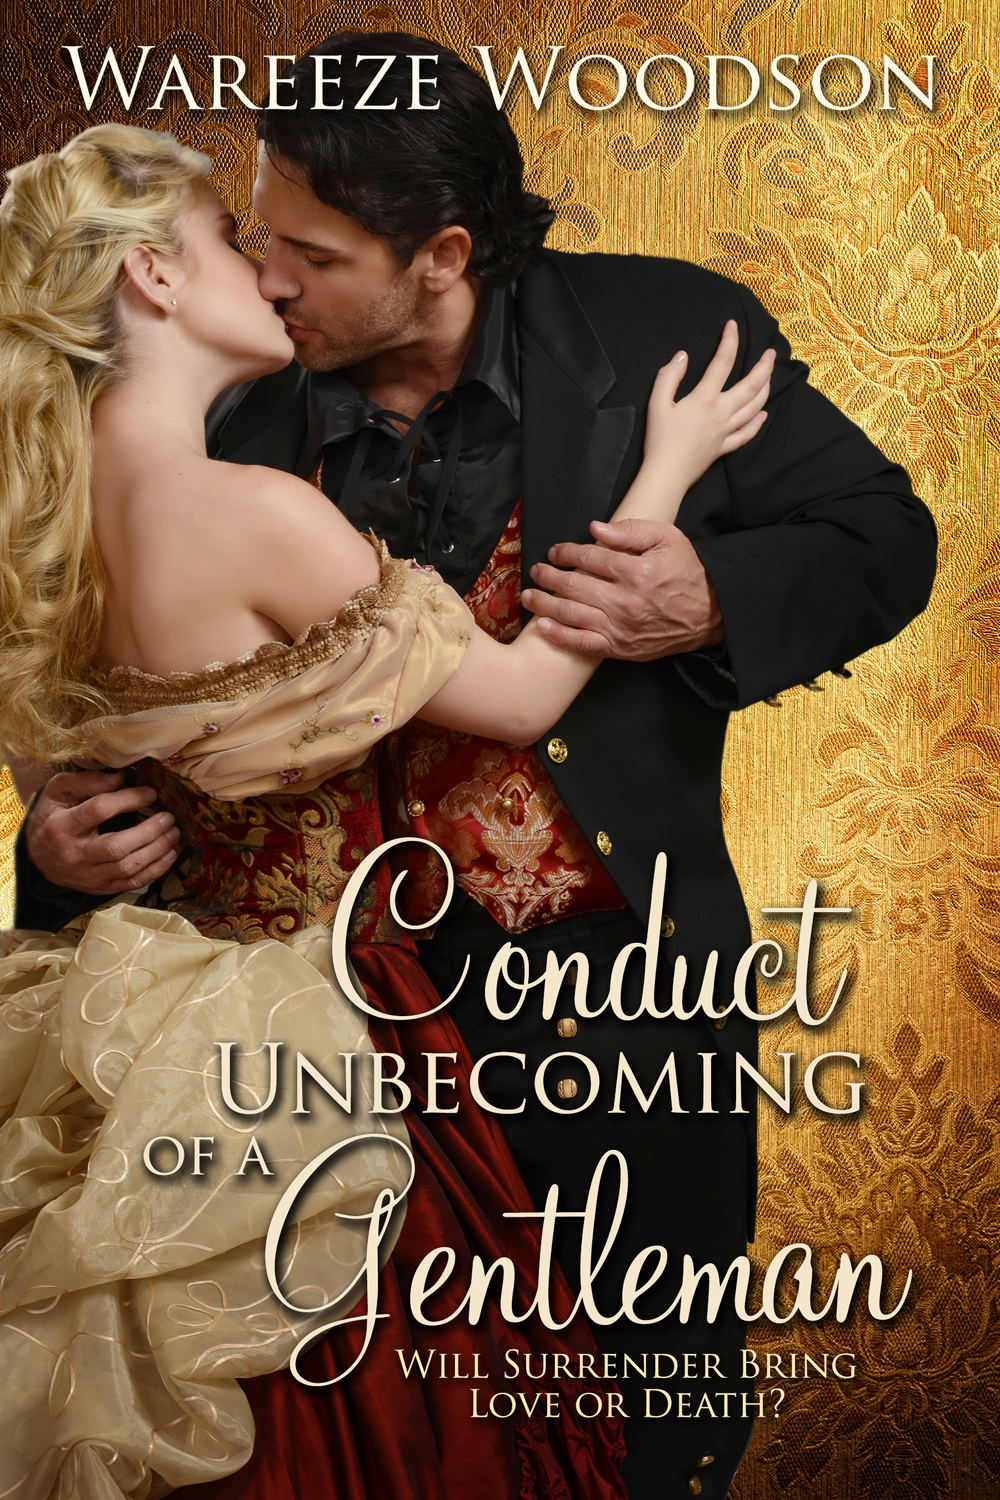 1_20 conduct Cover_Conduct Unbecoming of a Gentleman